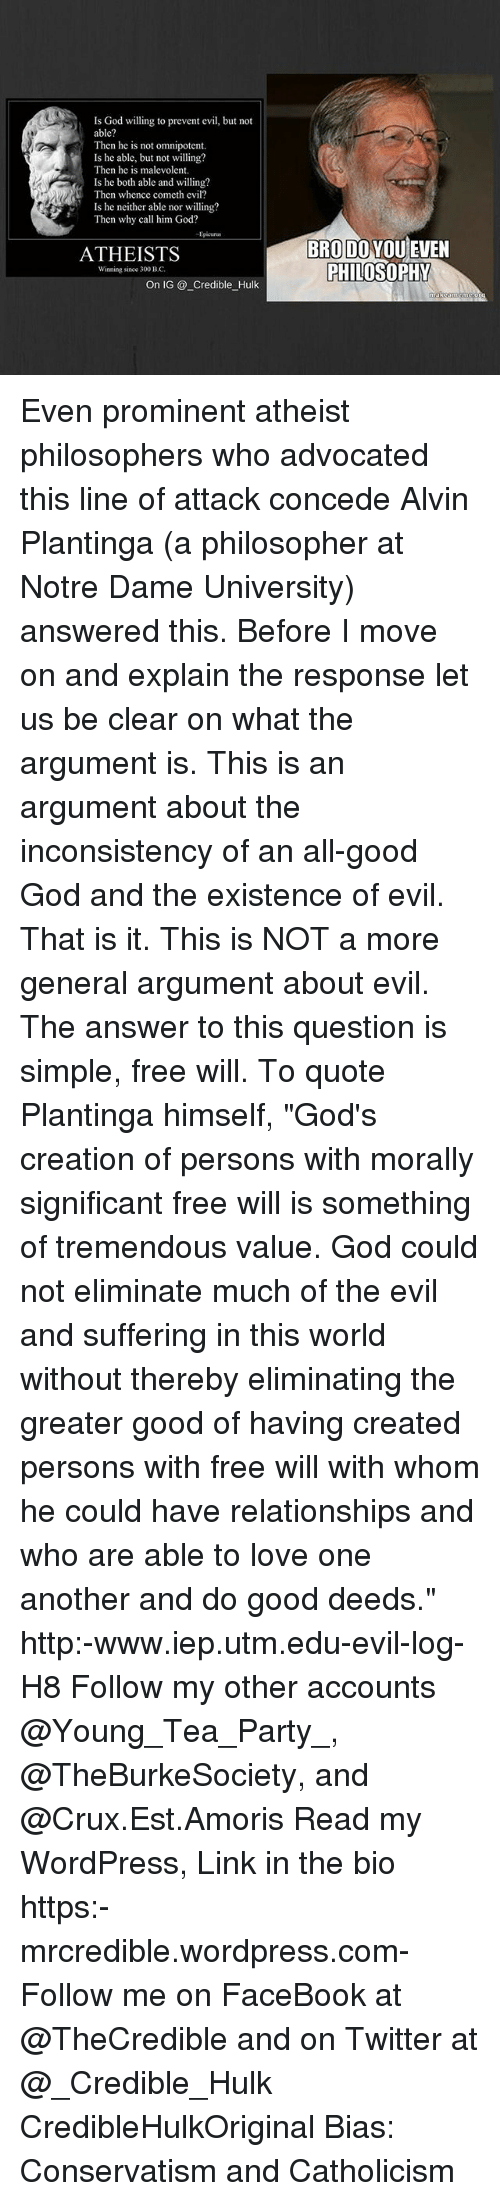 an argument on the source of evil and suffering in the world